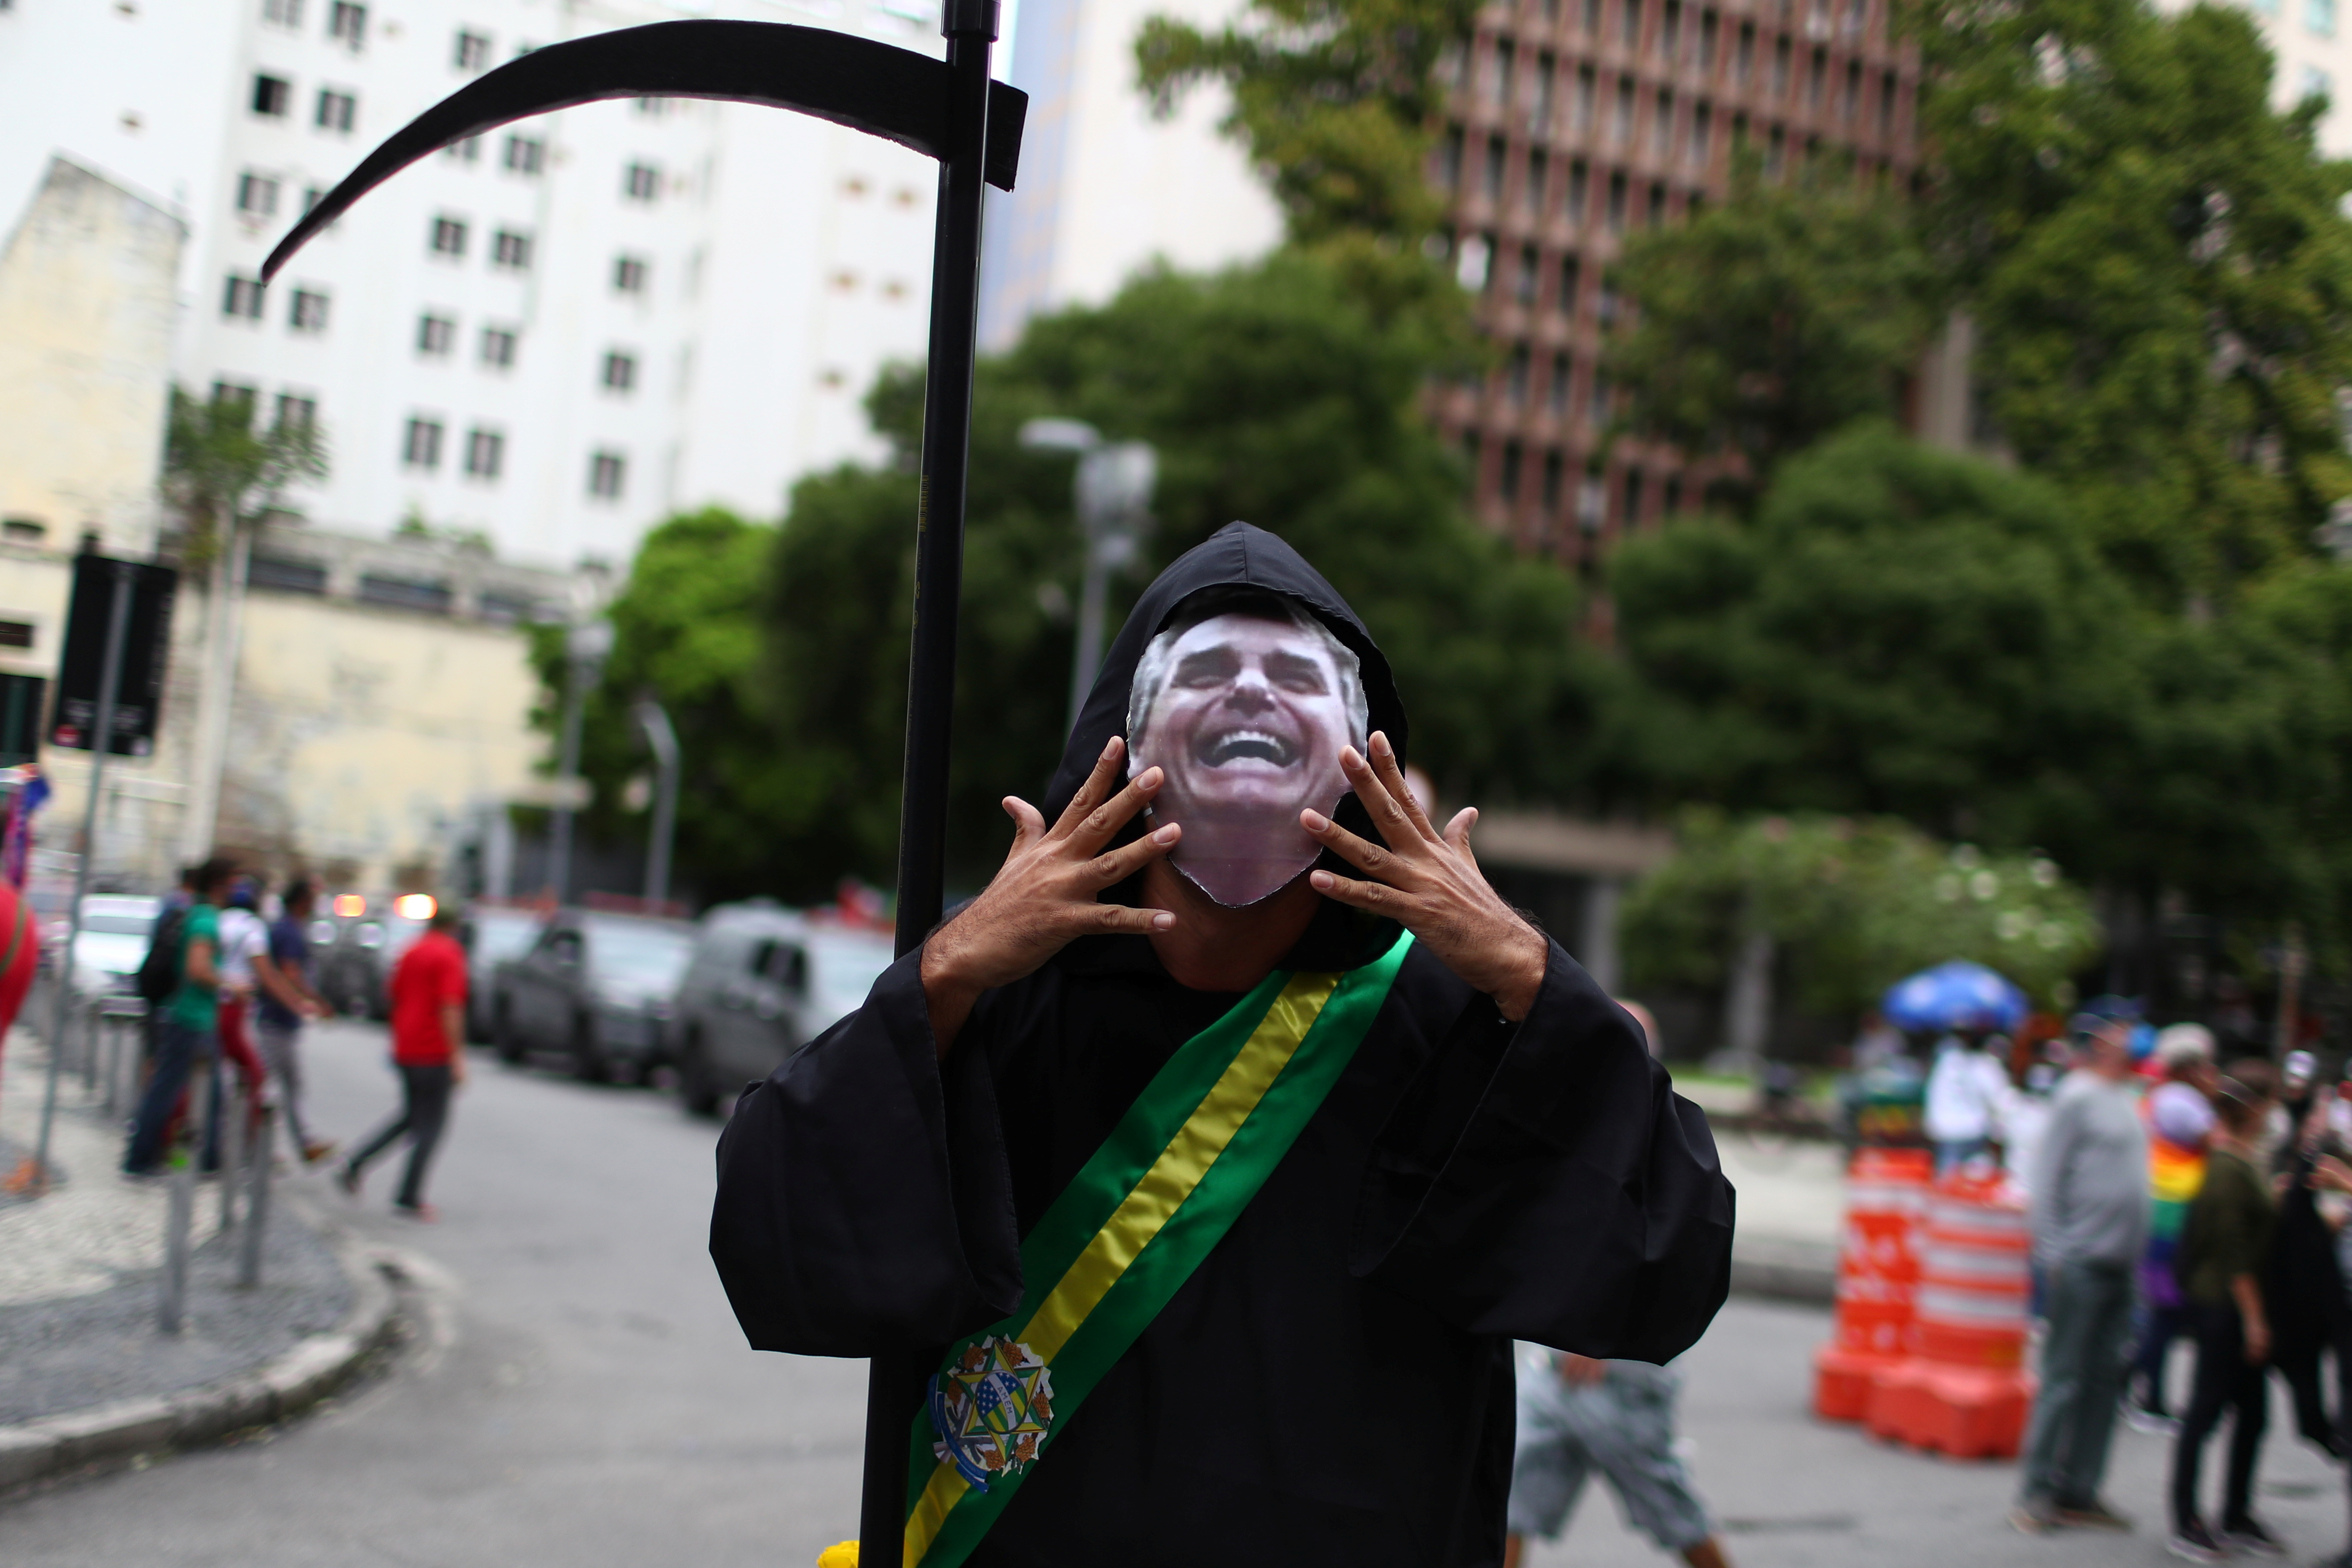 A person dressed up as the grim reaper attends a demonstration against Brazil's President Jair Bolsonaro's handling of the coronavirus disease (COVID-19) pandemic and to impeach him, in Rio de Janeiro, Brazil, June 19, 2021. REUTERS/Pilar Olivares